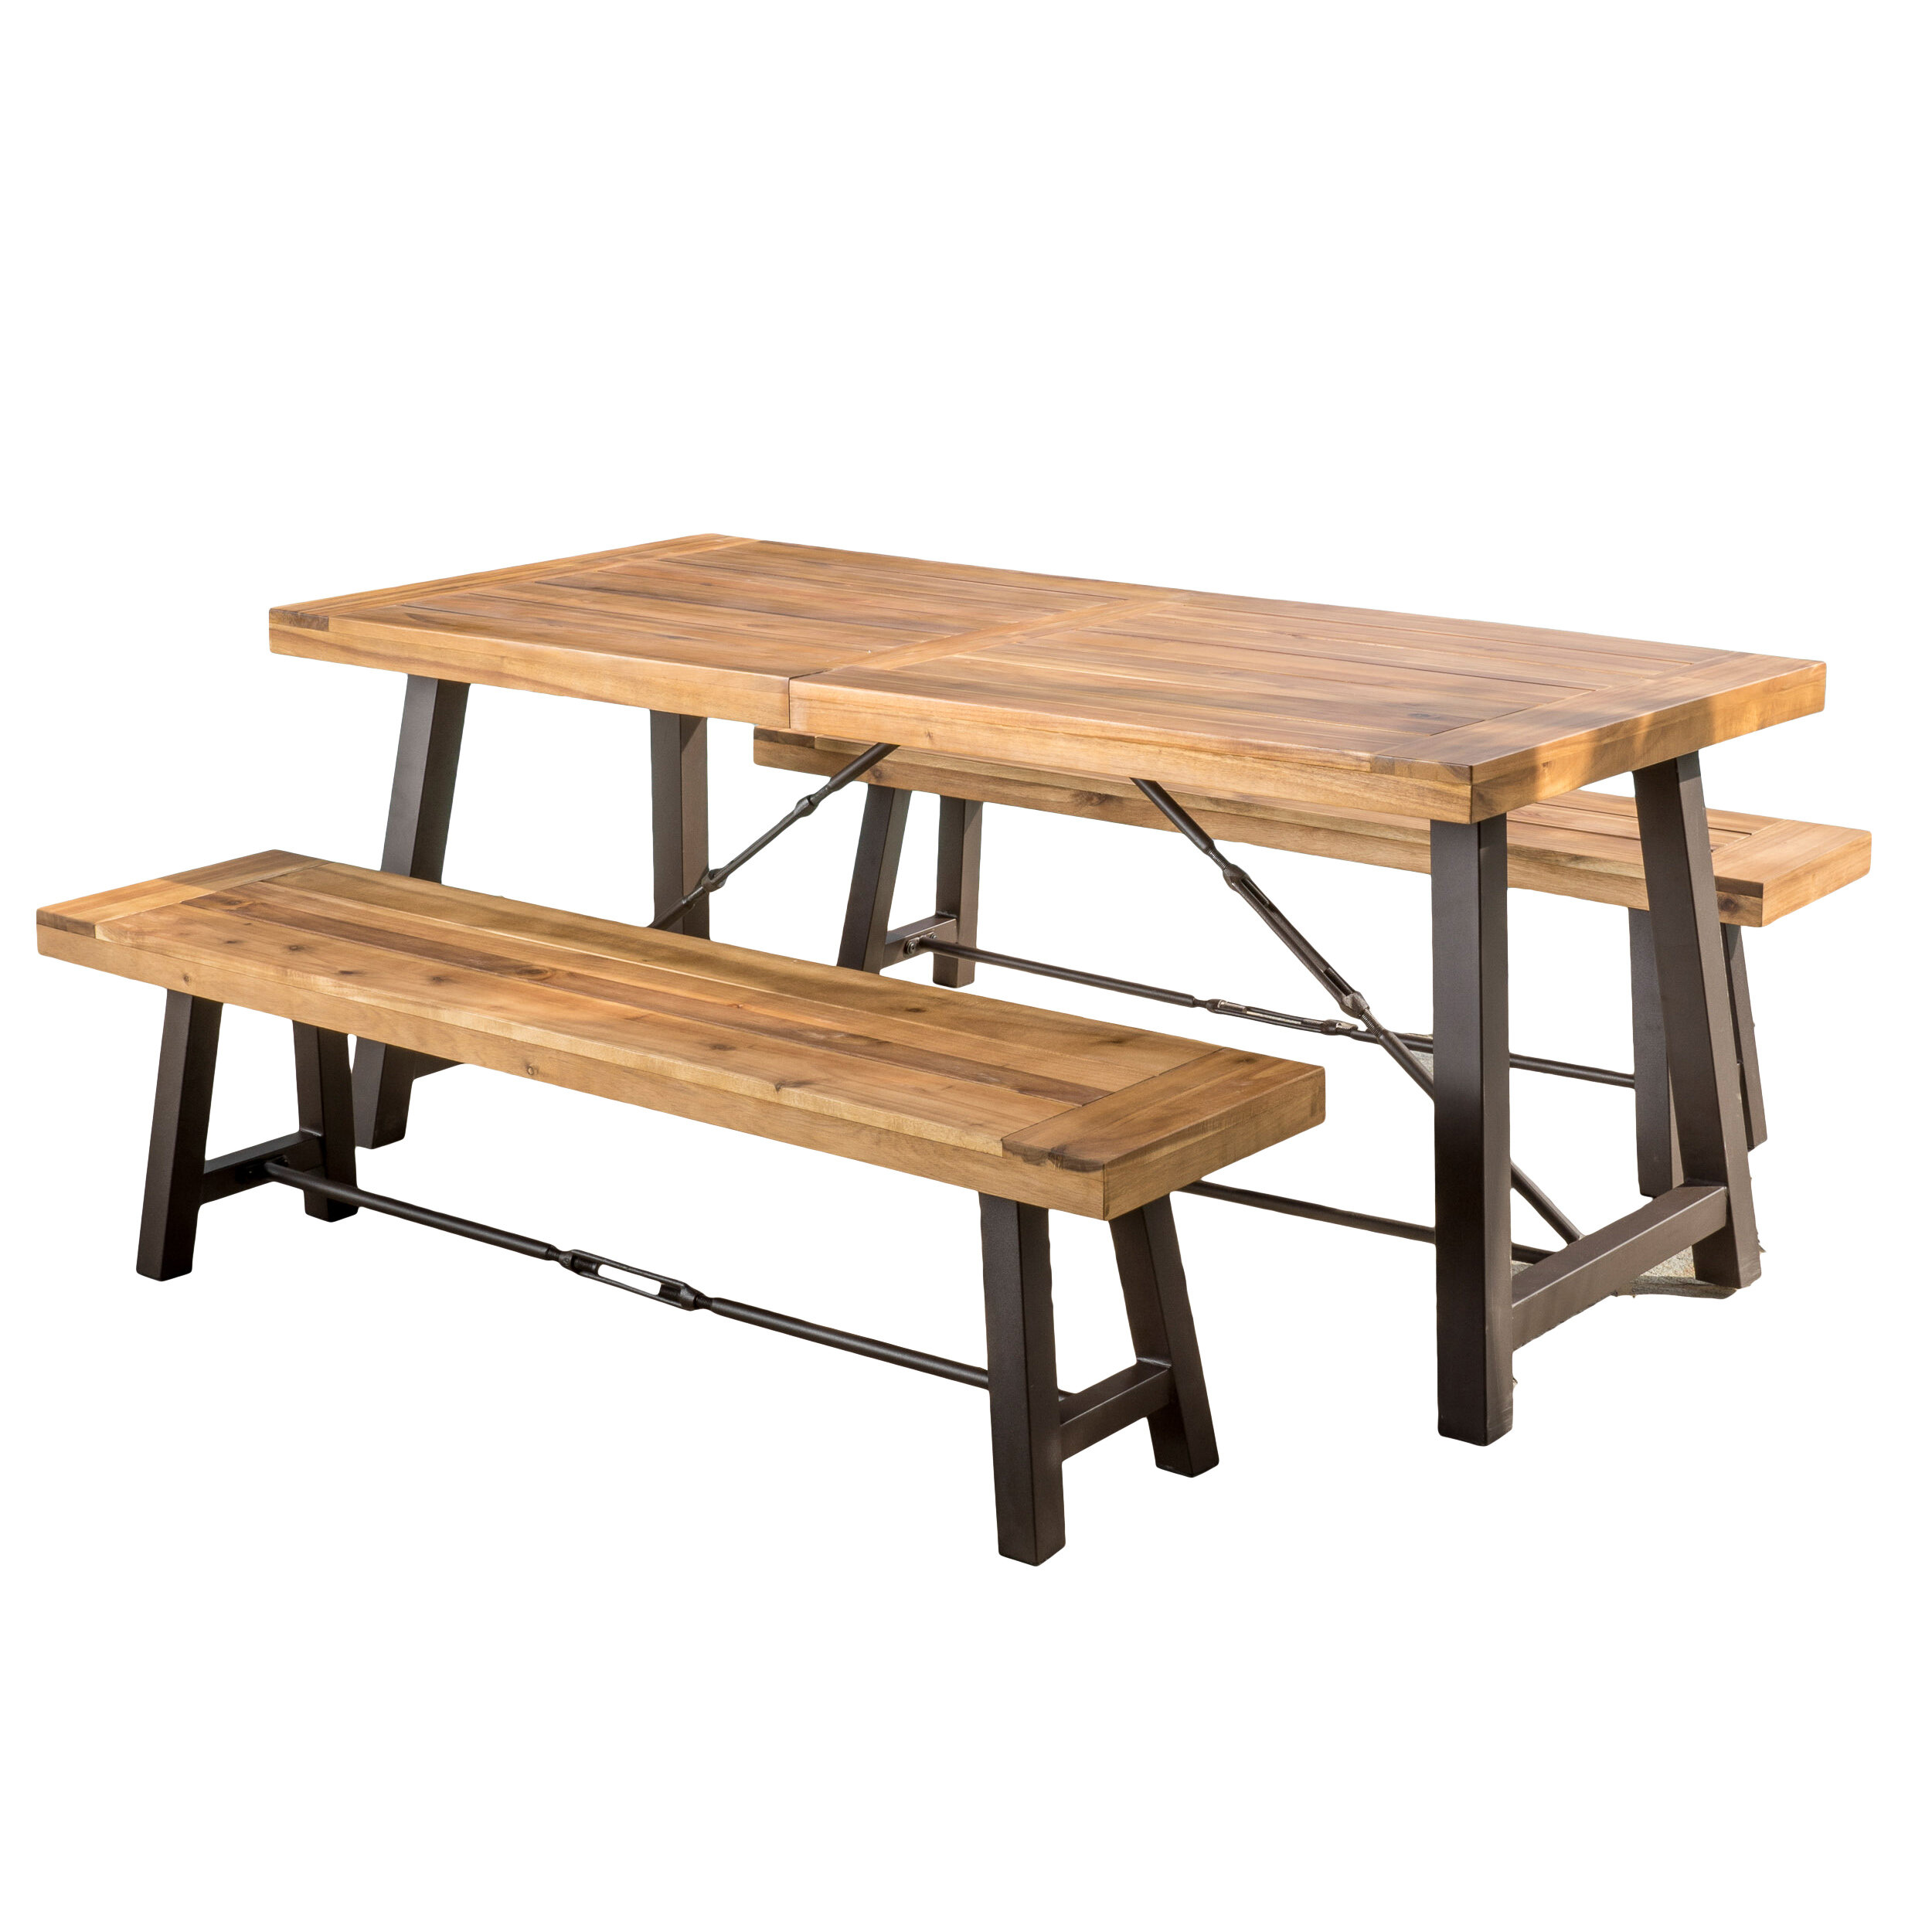 Swell Lebanon 3 Piece Solid Wood Dining Set Gmtry Best Dining Table And Chair Ideas Images Gmtryco